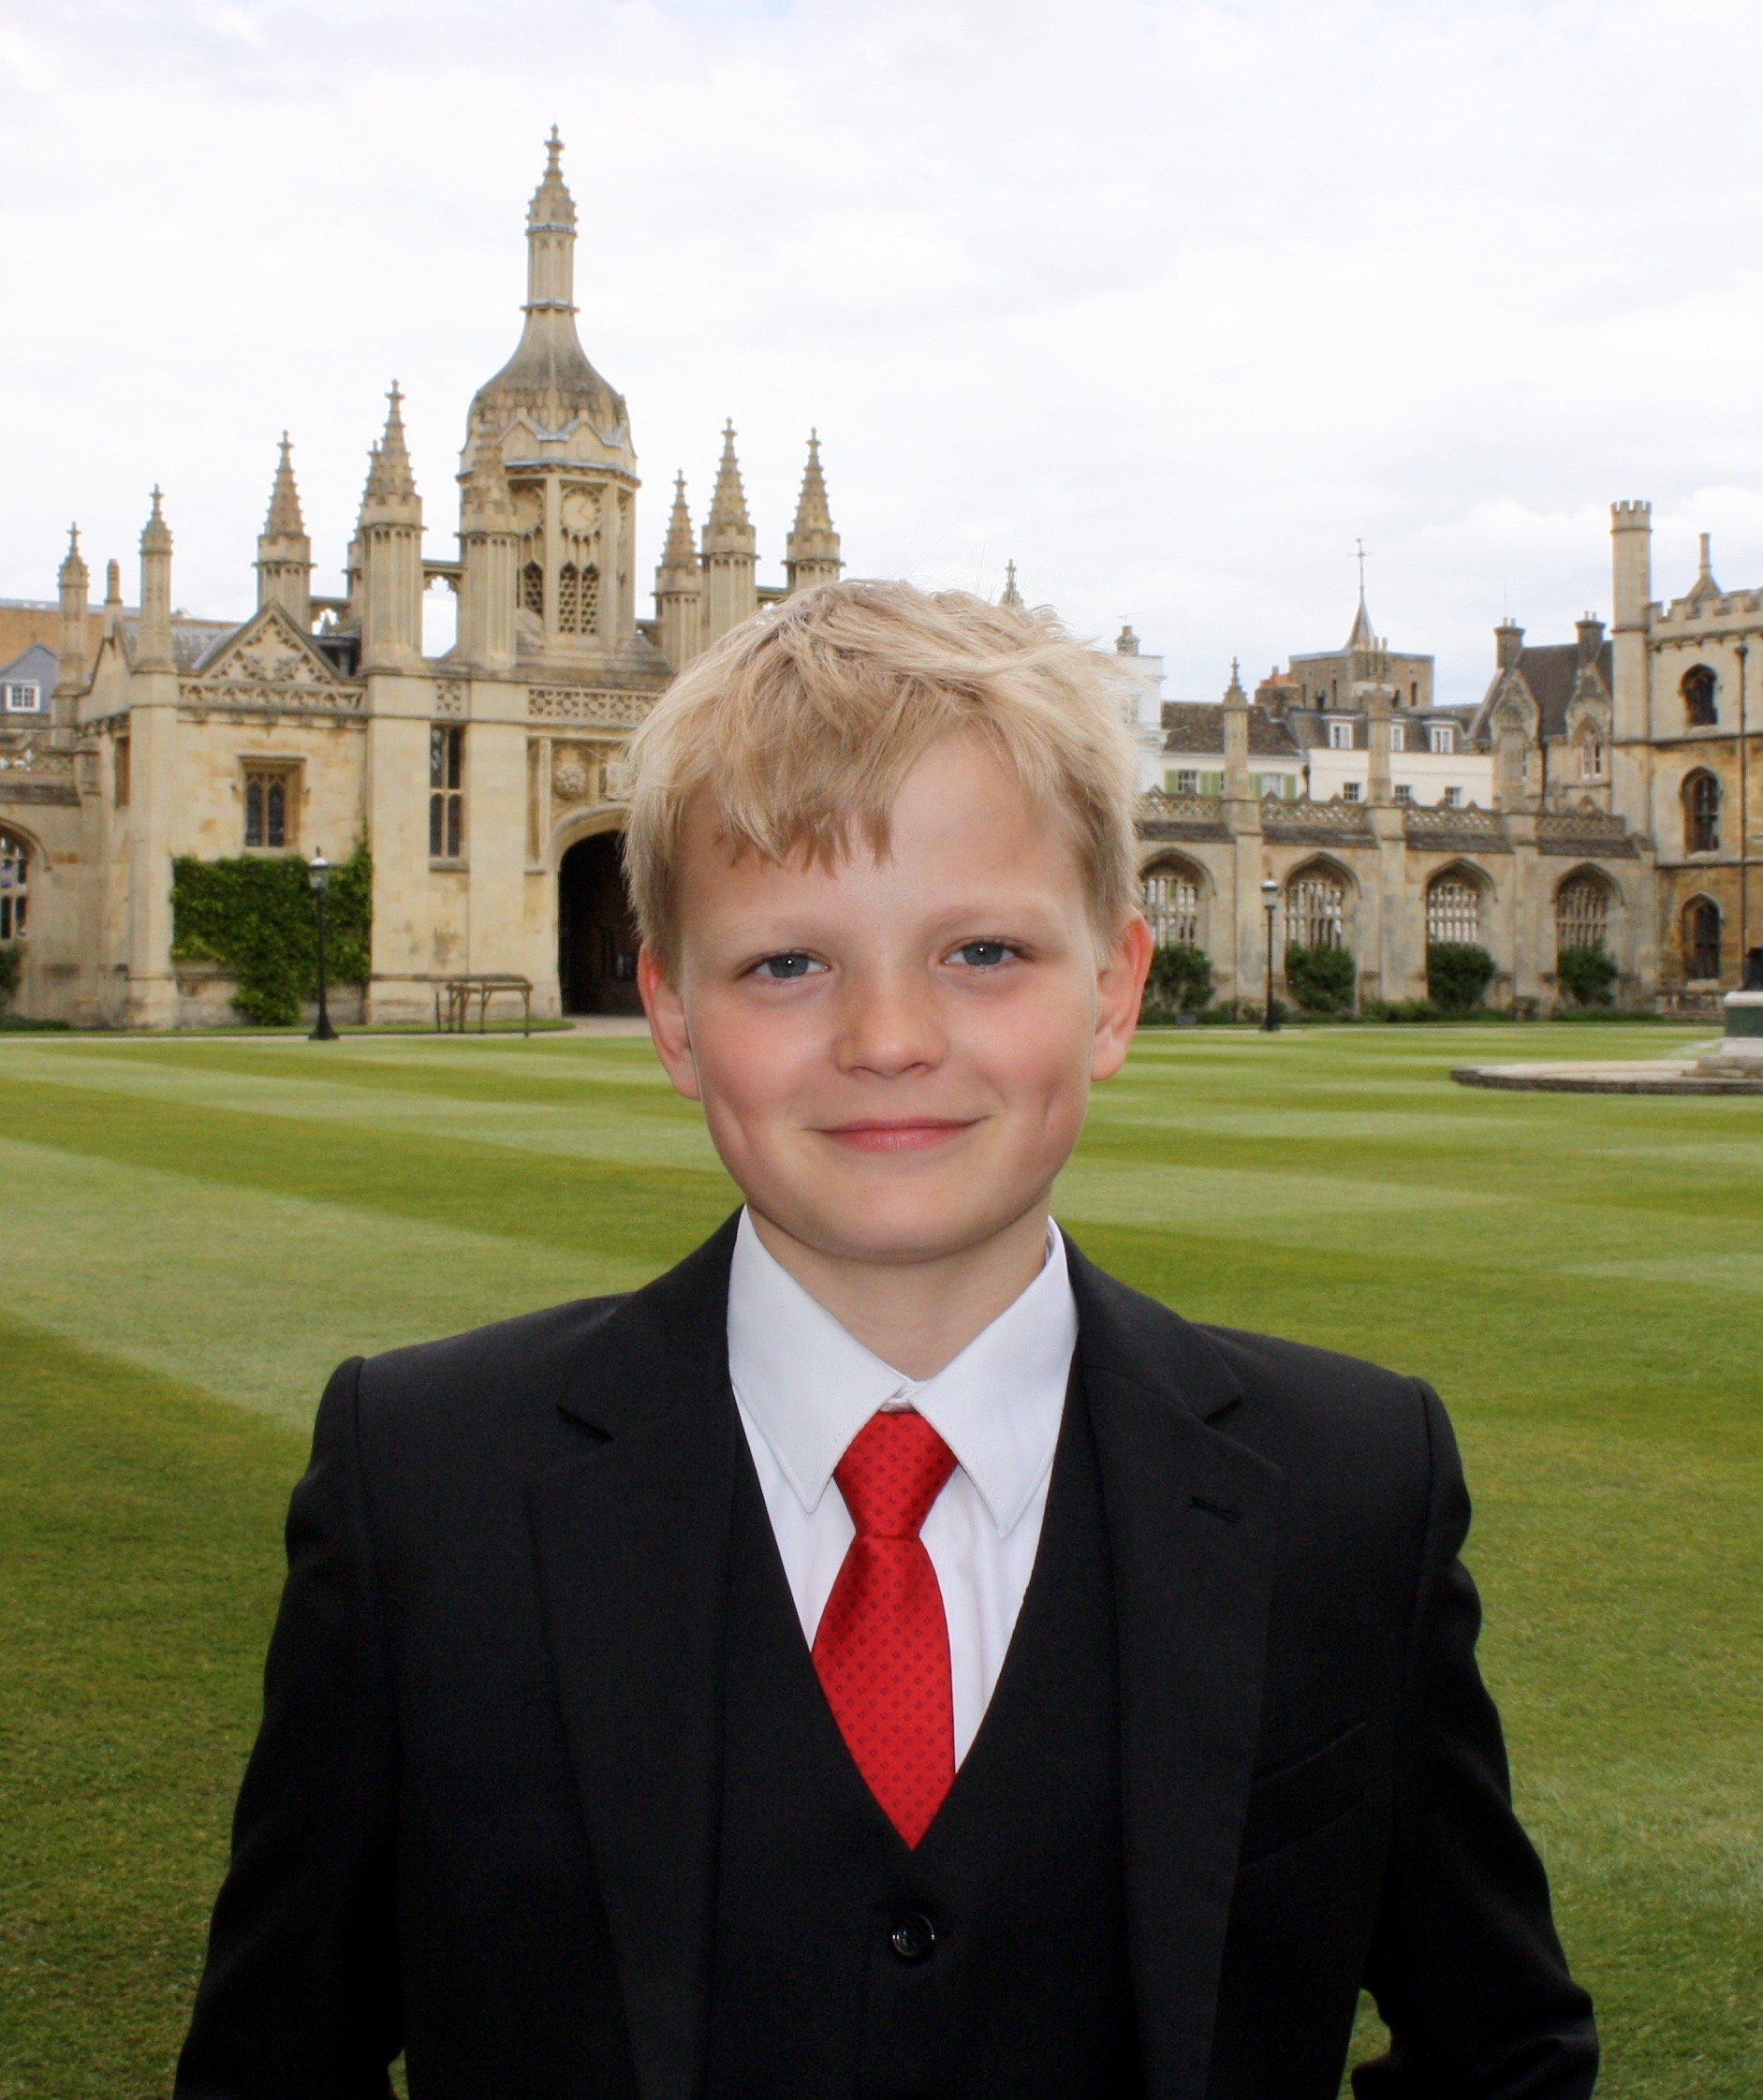 King's College Cambridge 2015.jpg